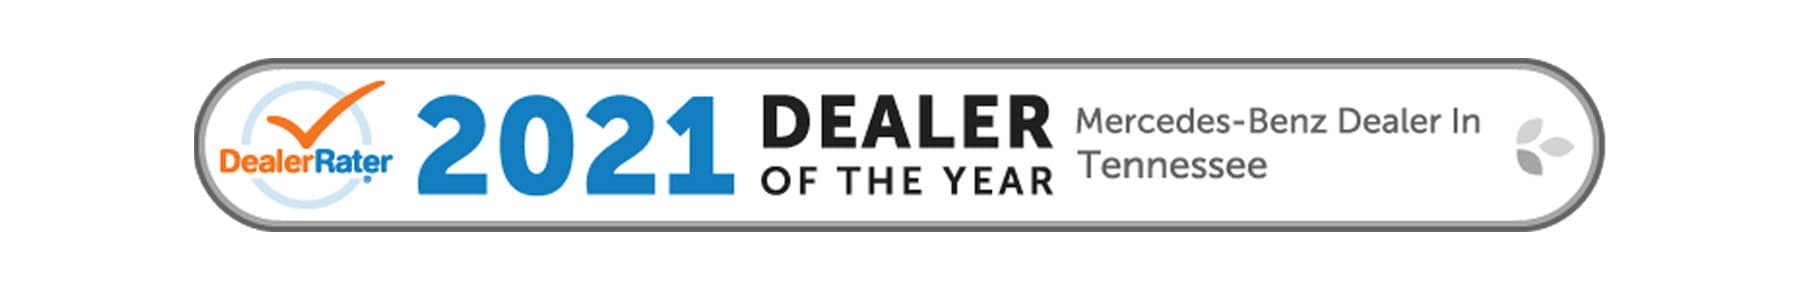 dealer rater mbofmc 2021